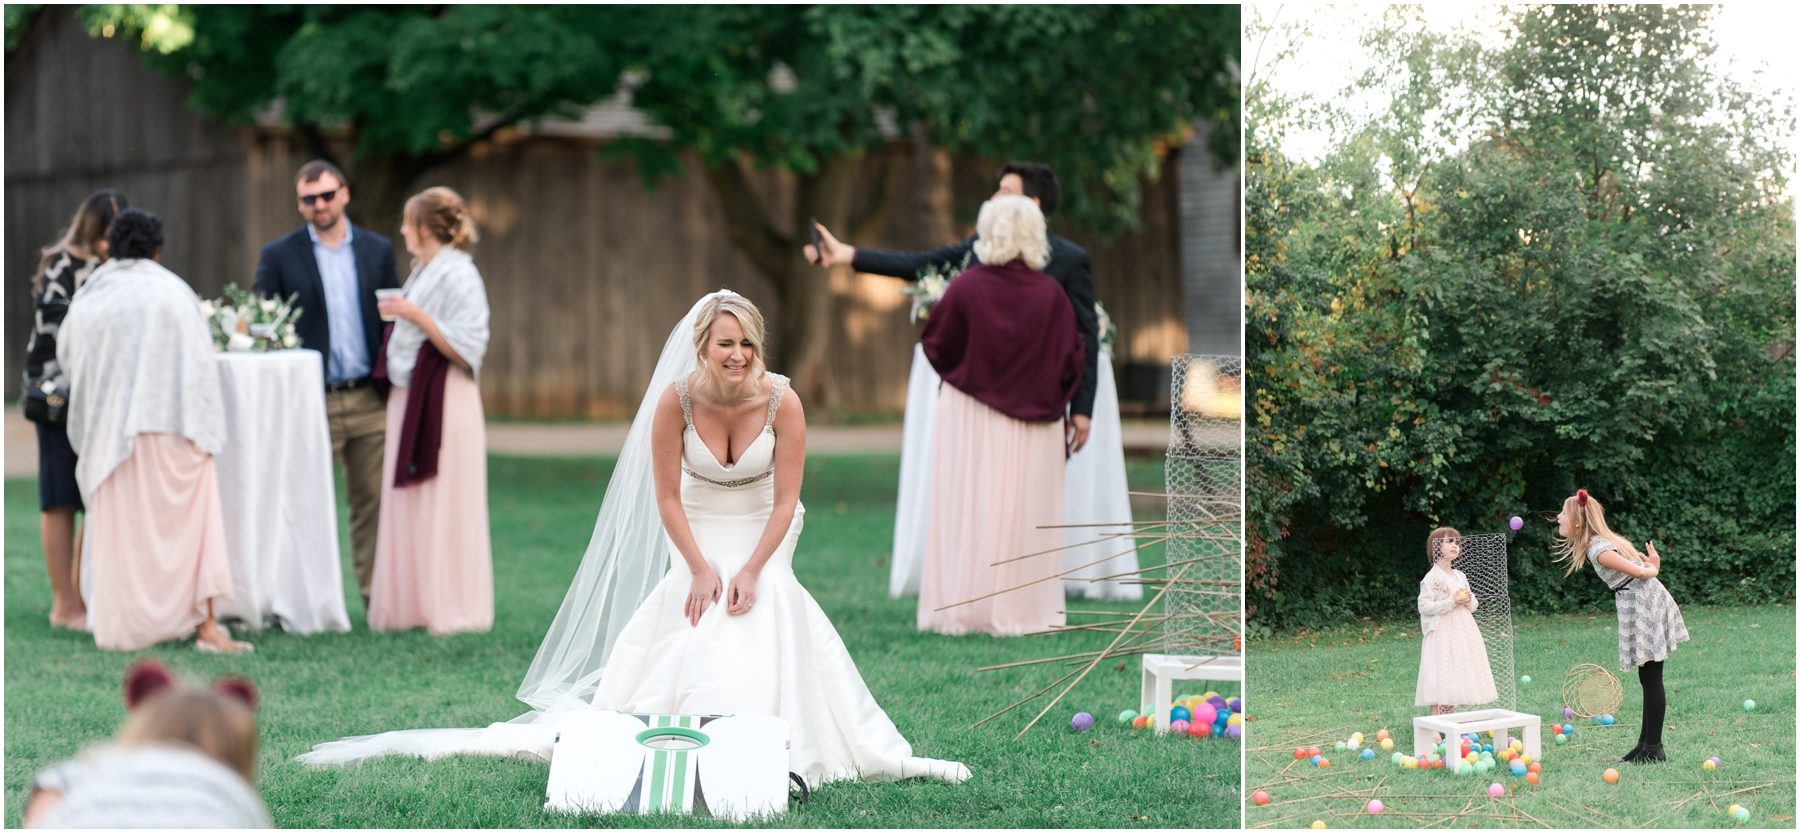 Black Creek Pioneer Village, Toronto Wedding- Precious Photography by Courtney McIntosh Becky & Andy_0194